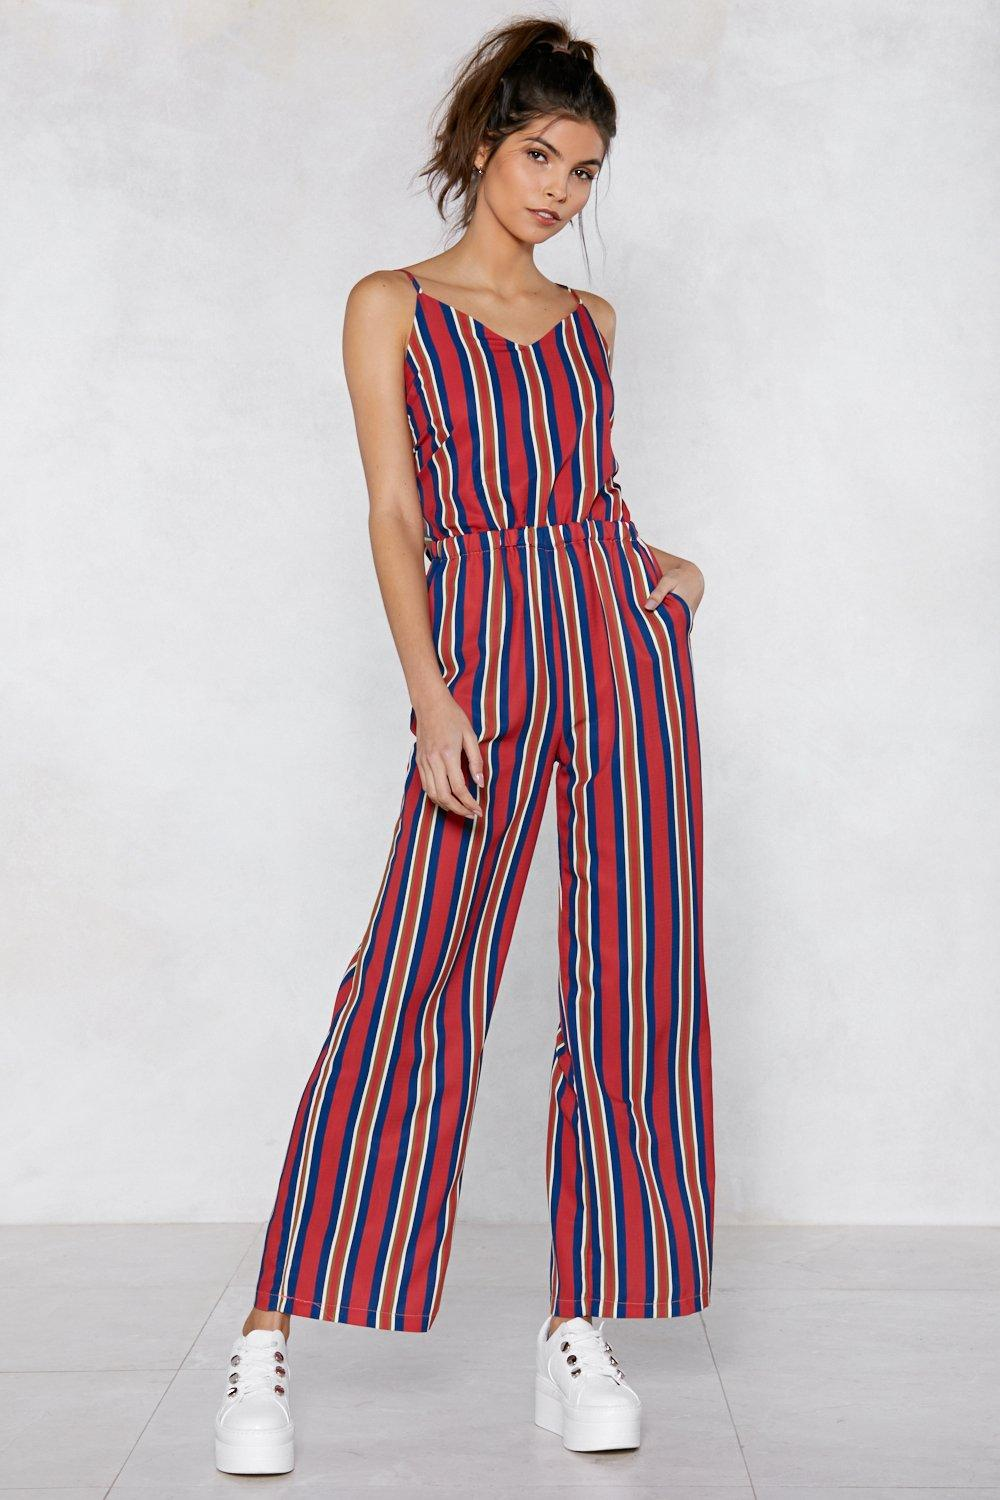 775619592e7f Blue And White Striped Jumpsuit With Tie